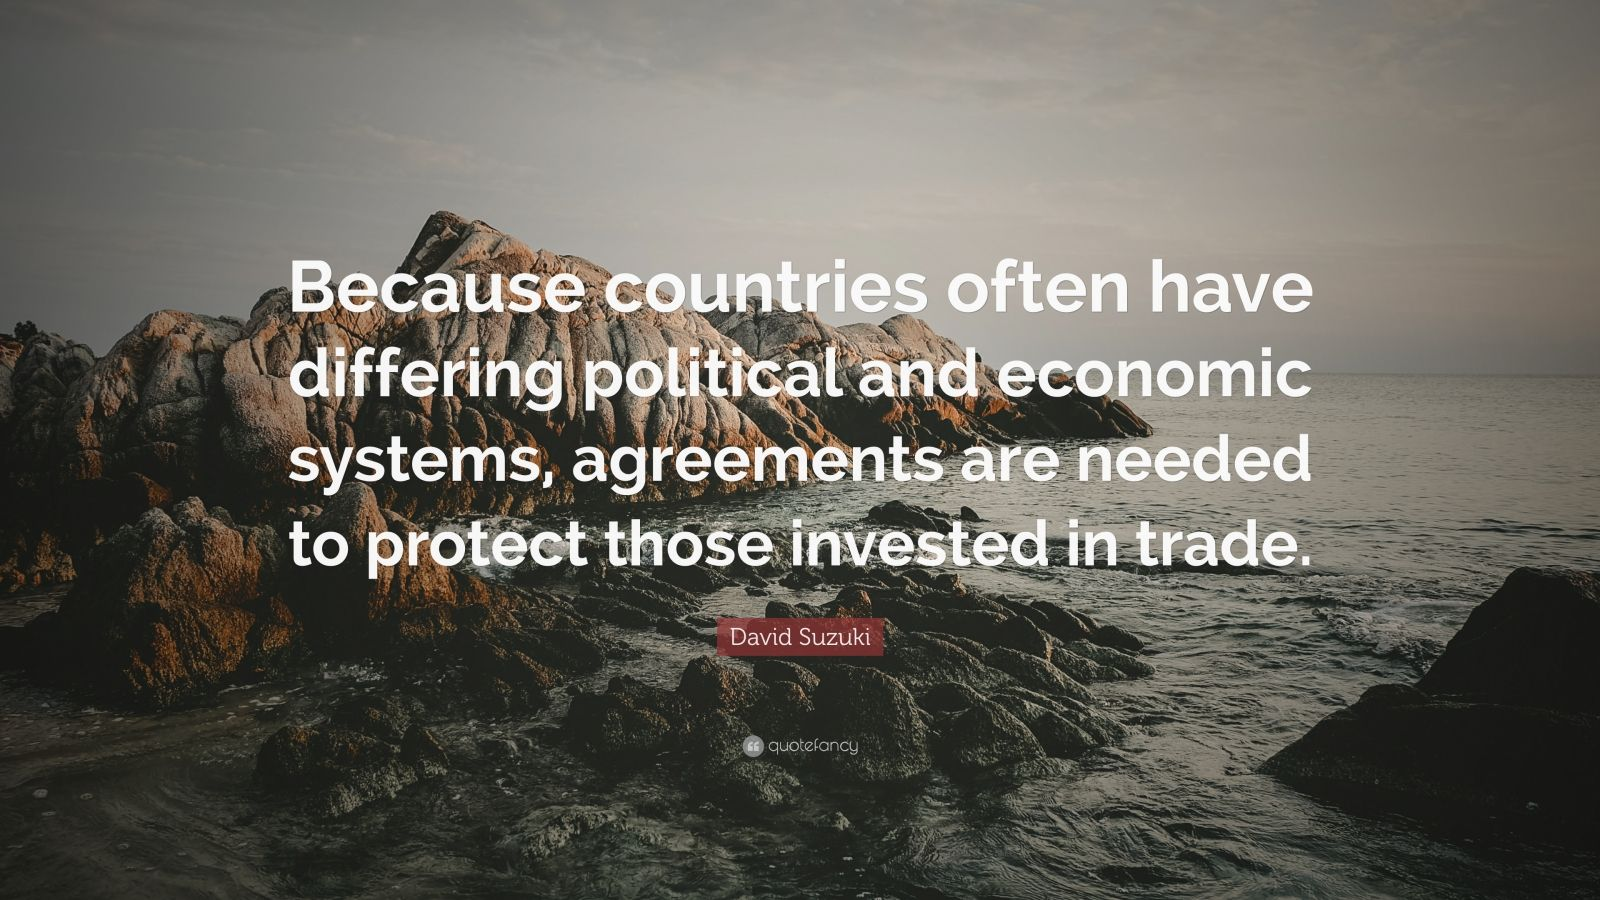 """David Suzuki Quote: """"Because countries often have differing political and economic systems, agreements are needed to protect those invested in trade."""""""